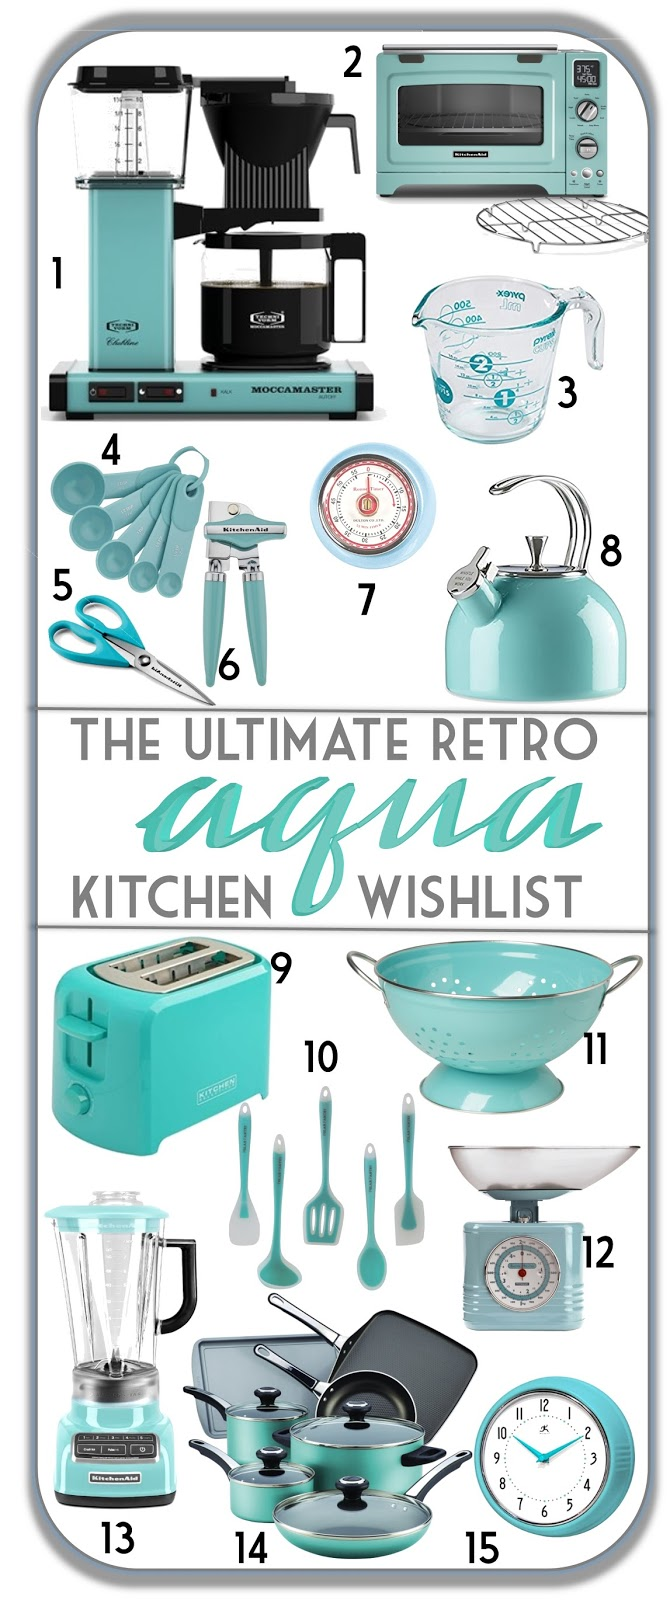 Mid Century Kitchen Must Haves In Aqua Turquoise Robin Egg Blue. Love The  Retro Vintage